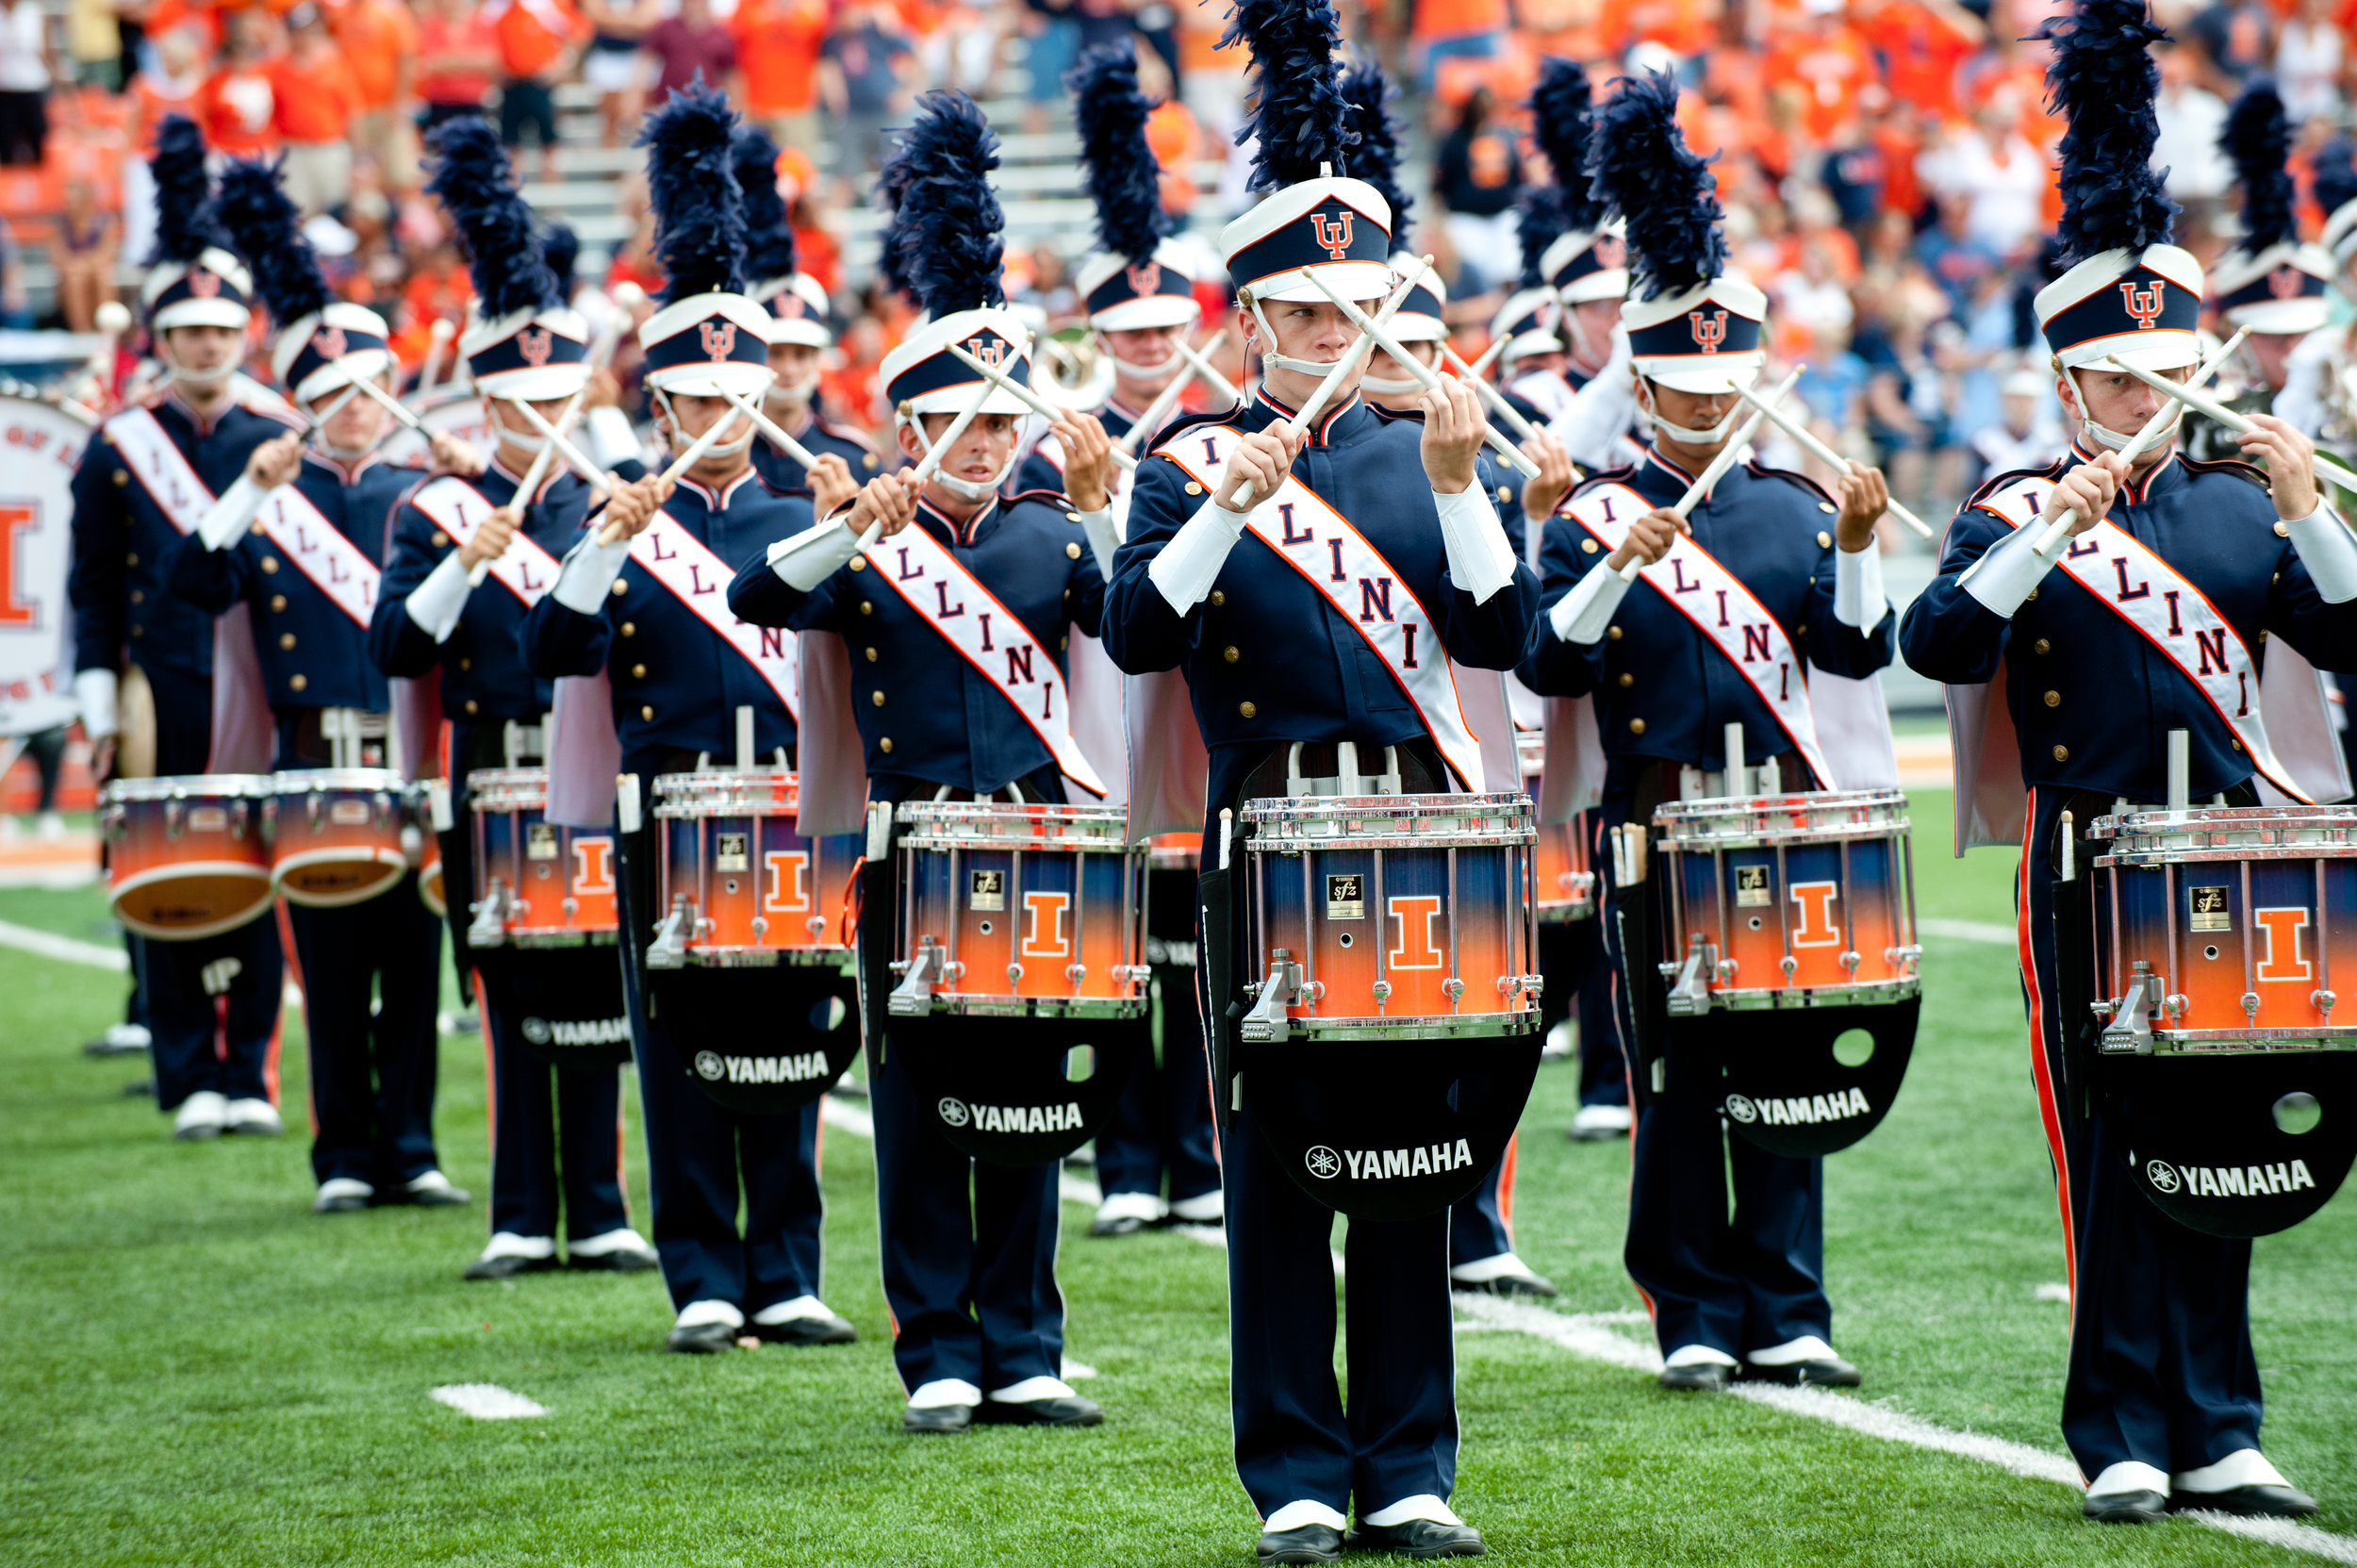 Youngstown State at Illinois - Marching Illini Percussion 010.JPG